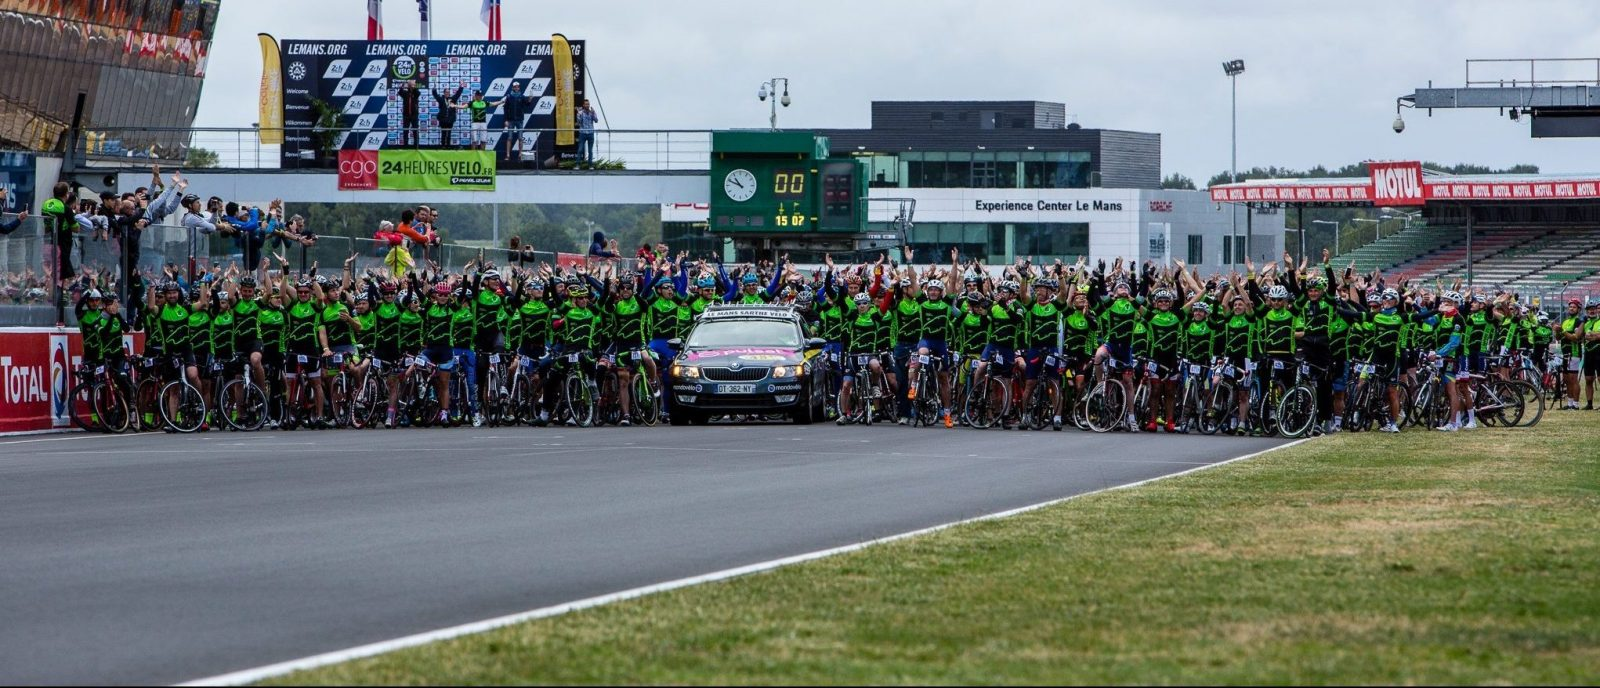 24 HOURS CYCLING: The 2019 edition will take place on August 24th and 25th